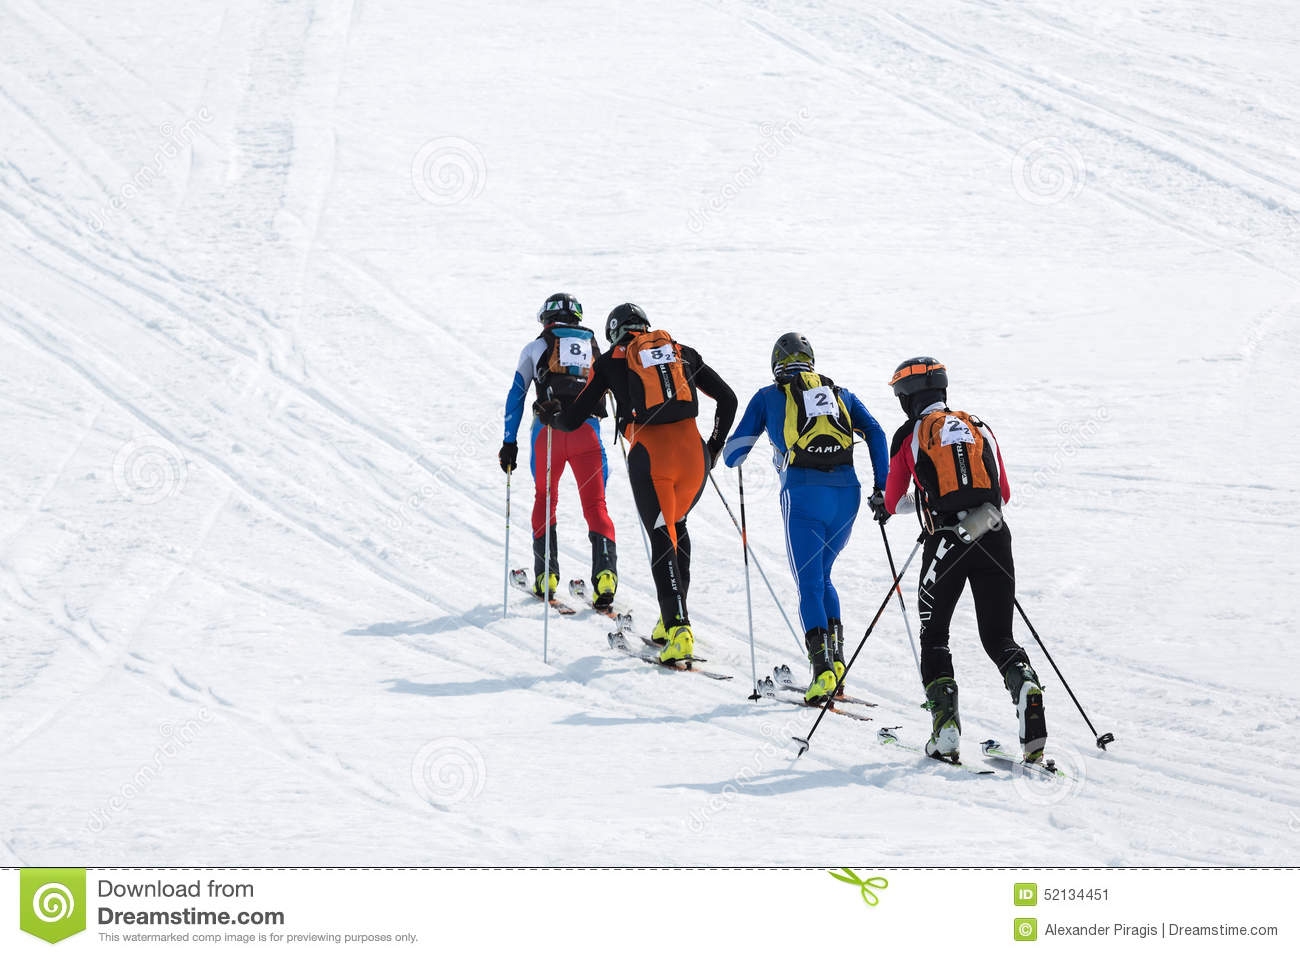 Two Teams Of Ski Mountaineers Climb The Mountain On Skis. Team.